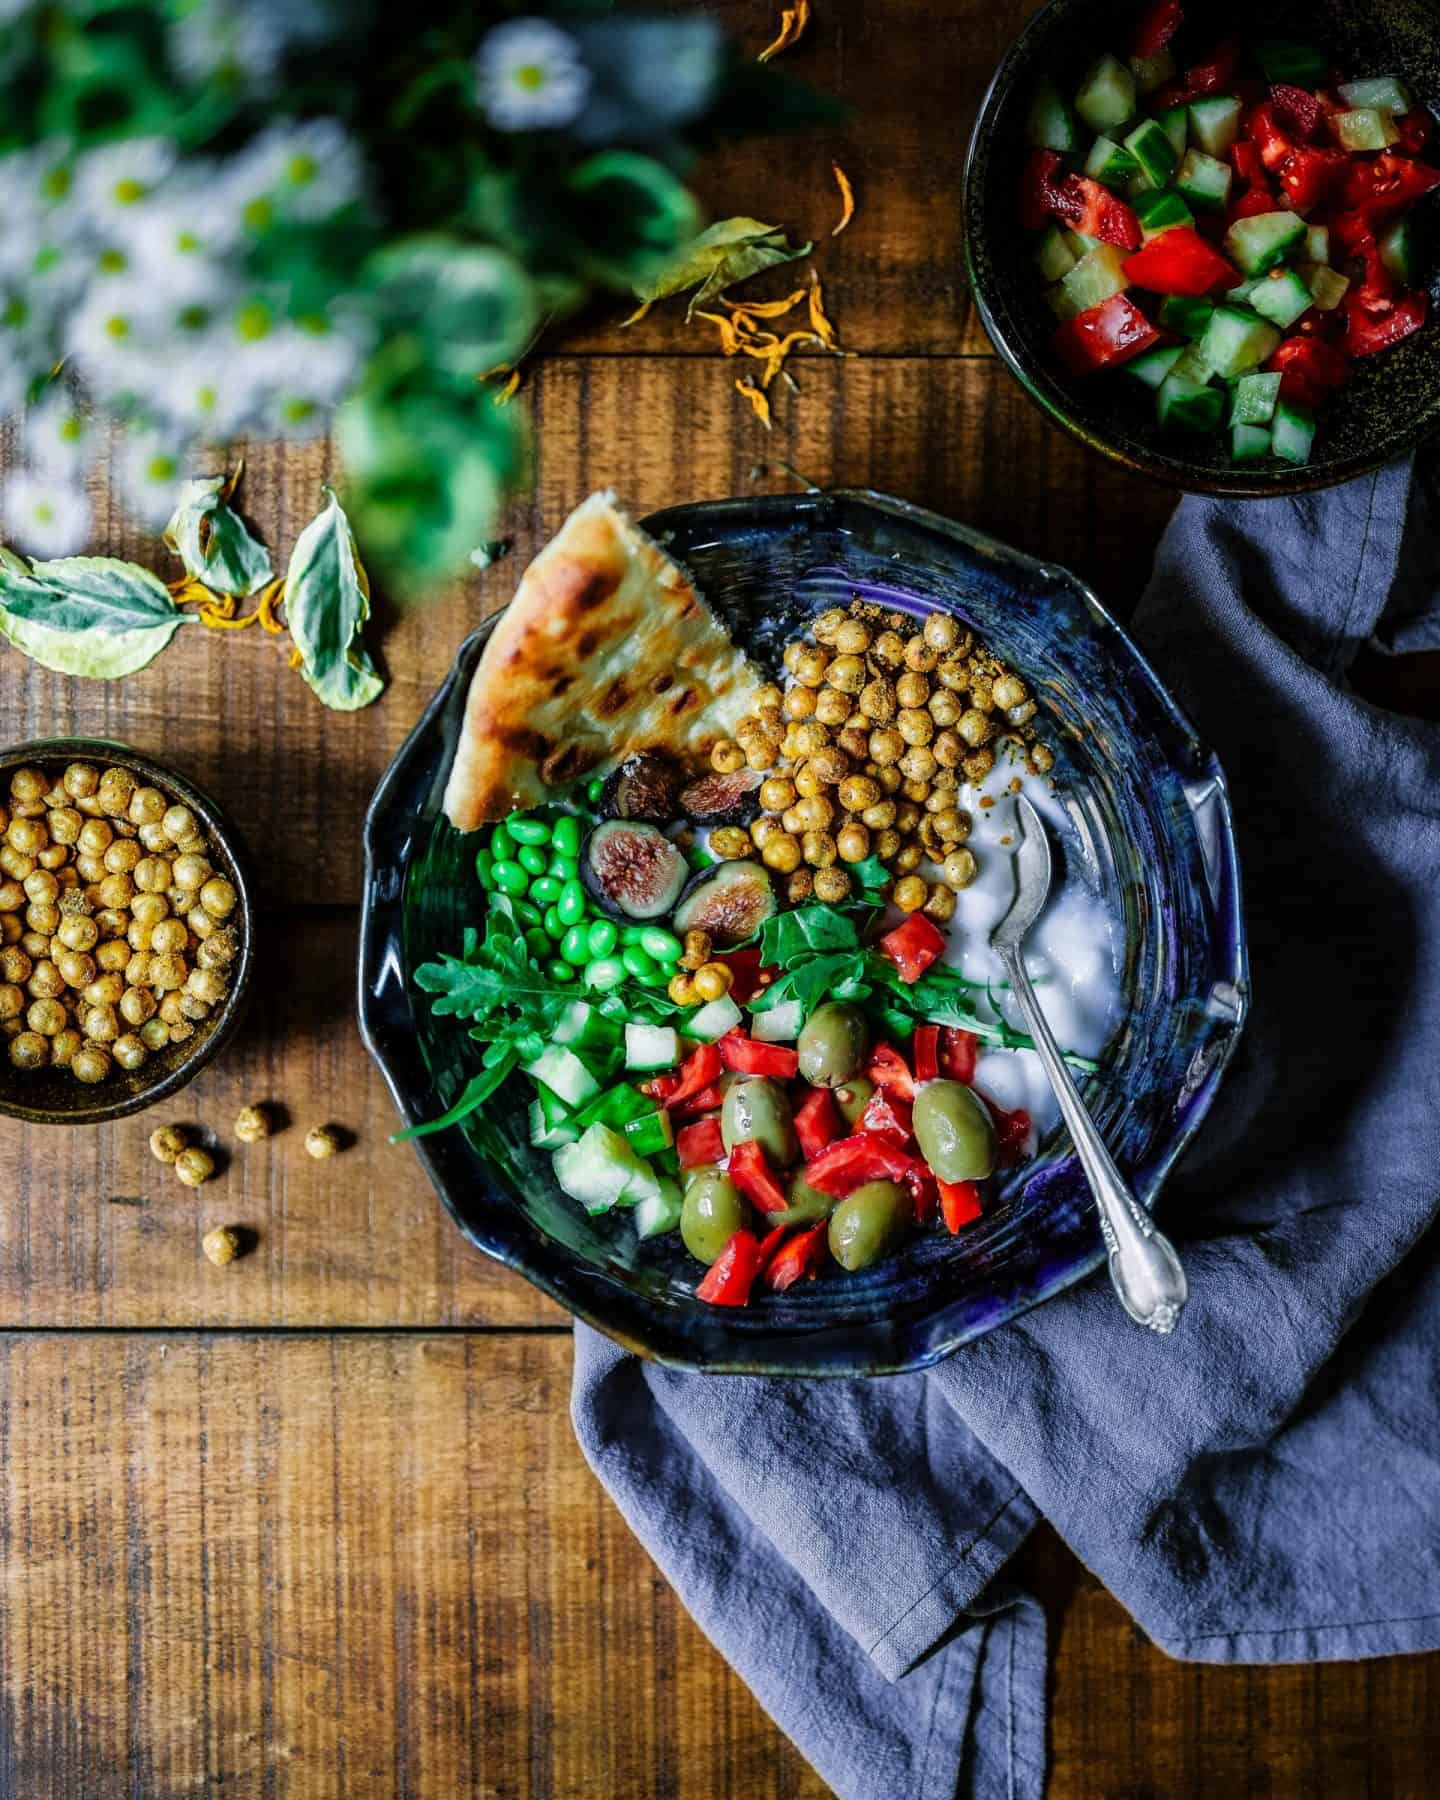 A Foodie's Guide to Mediterranean Cuisine